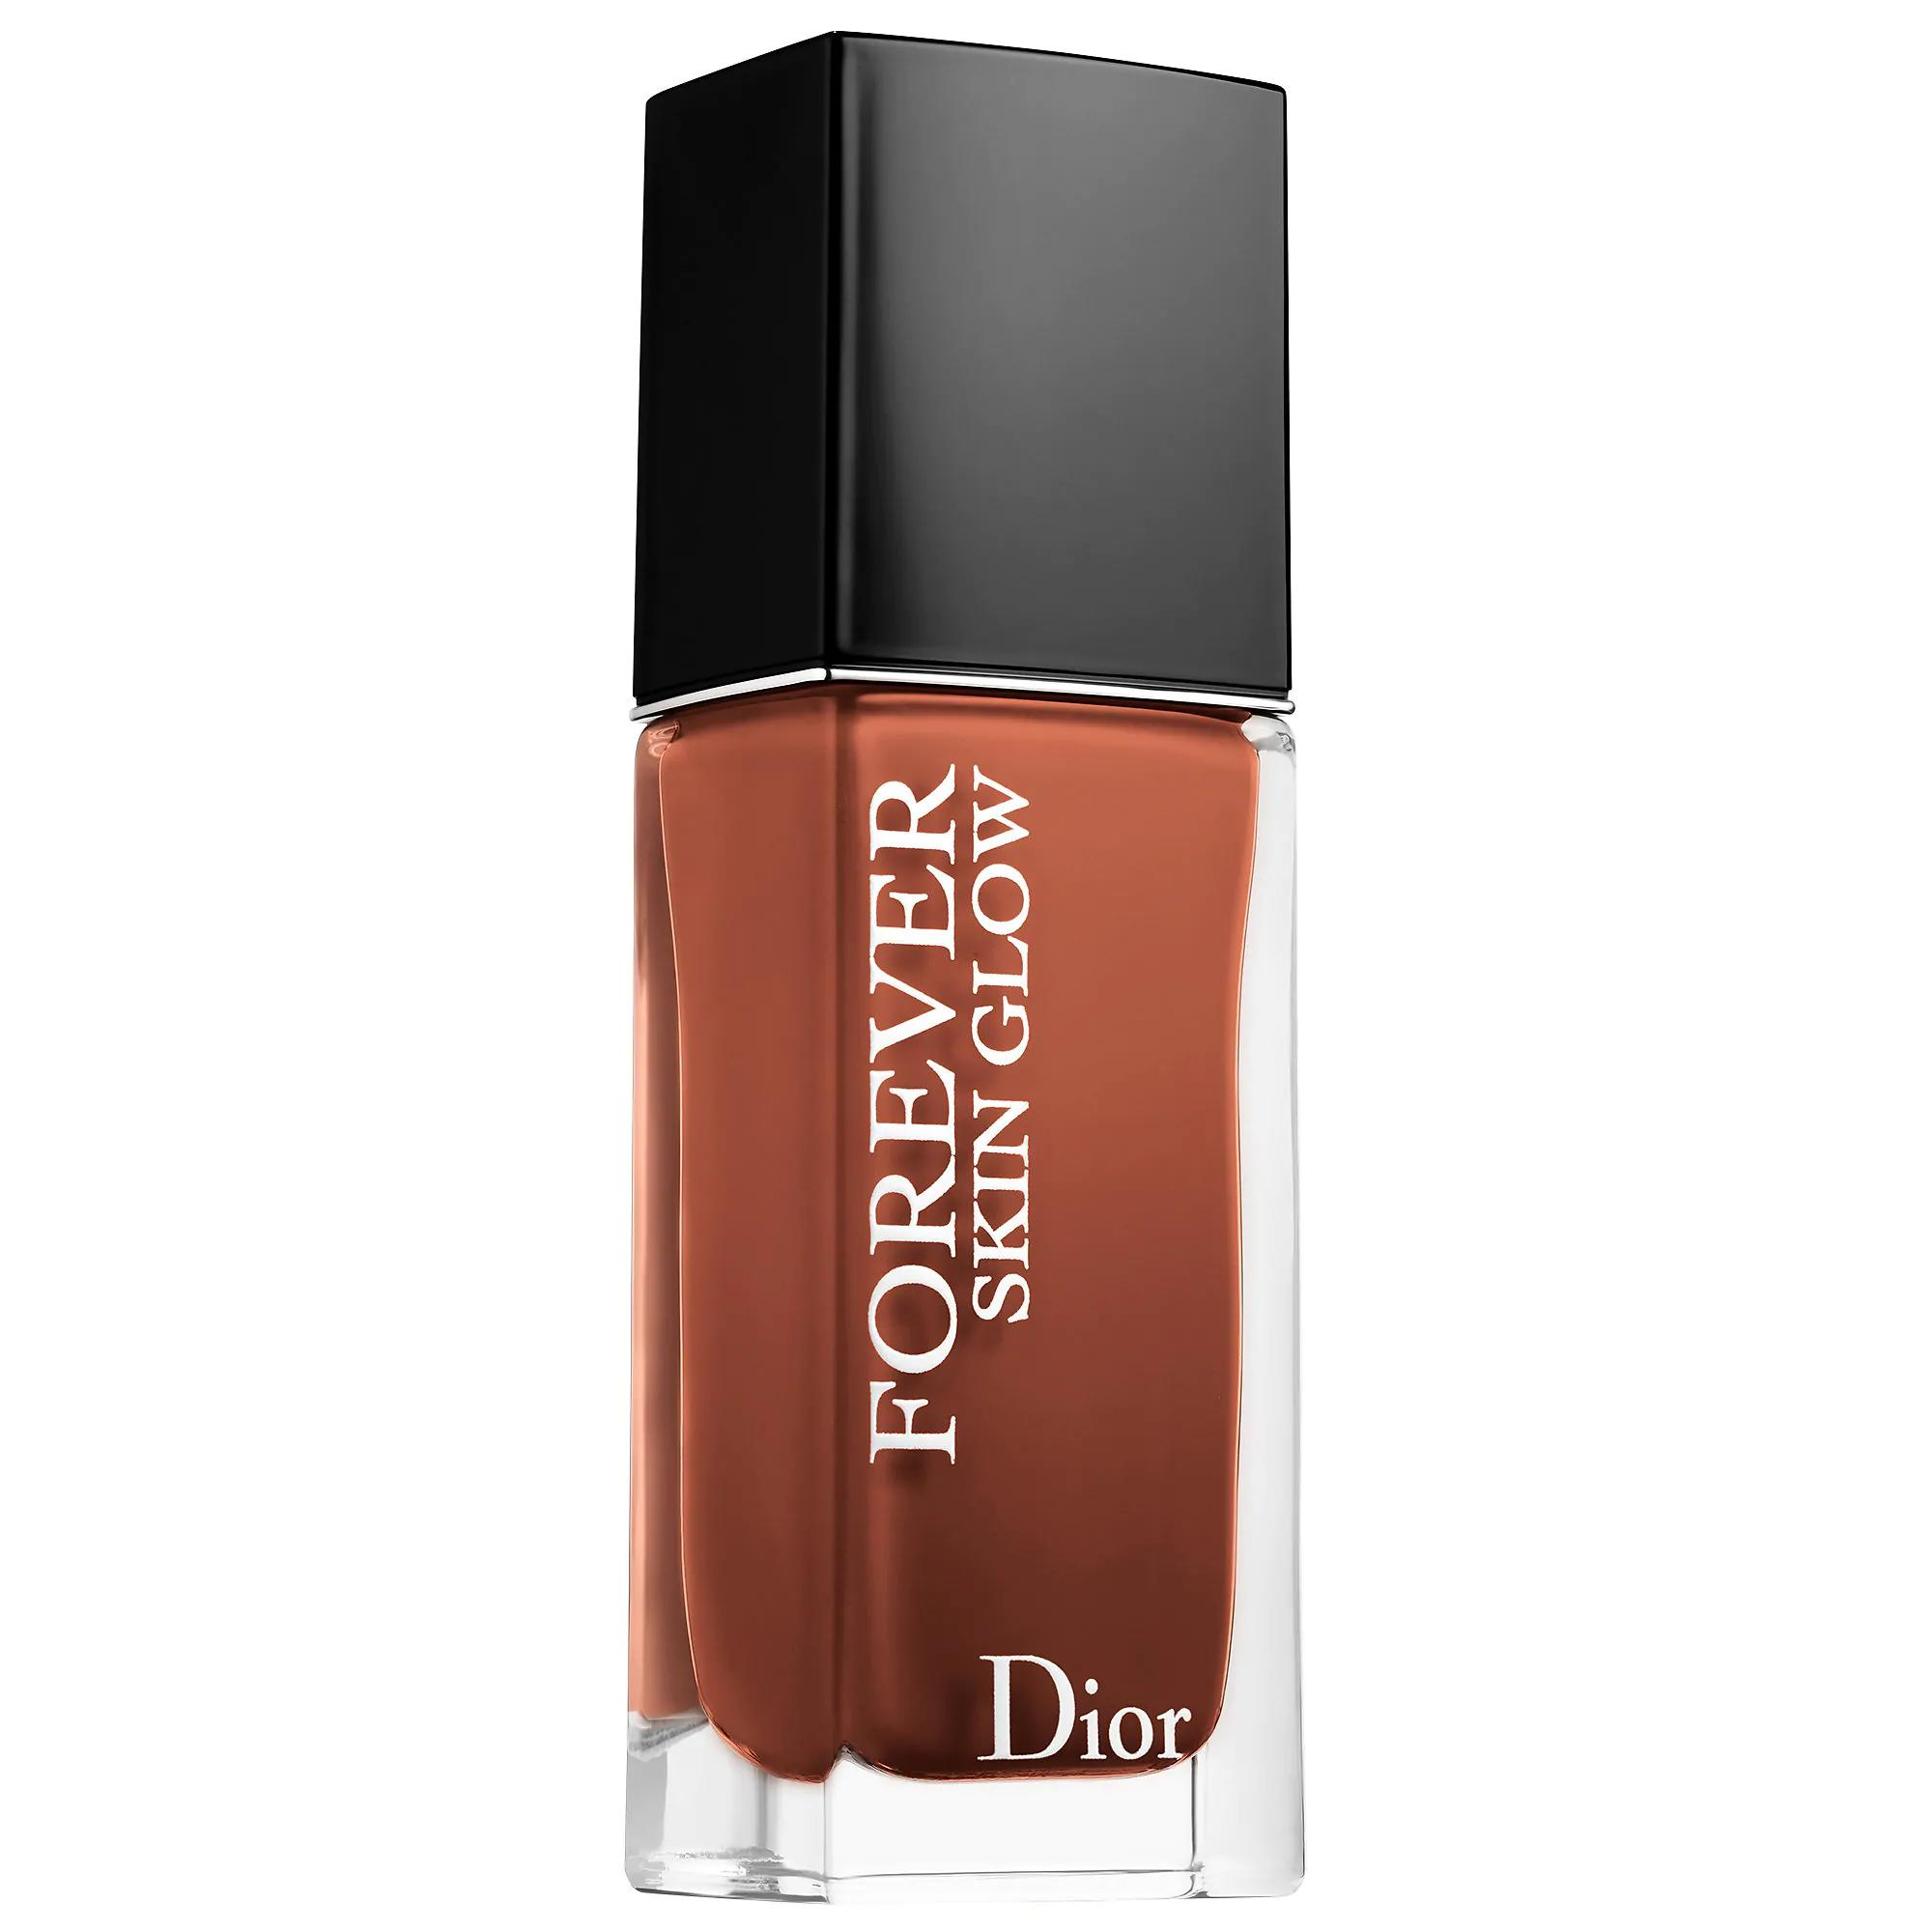 Dior Forever Skin Glow Radiant Perfection Foundation 7N